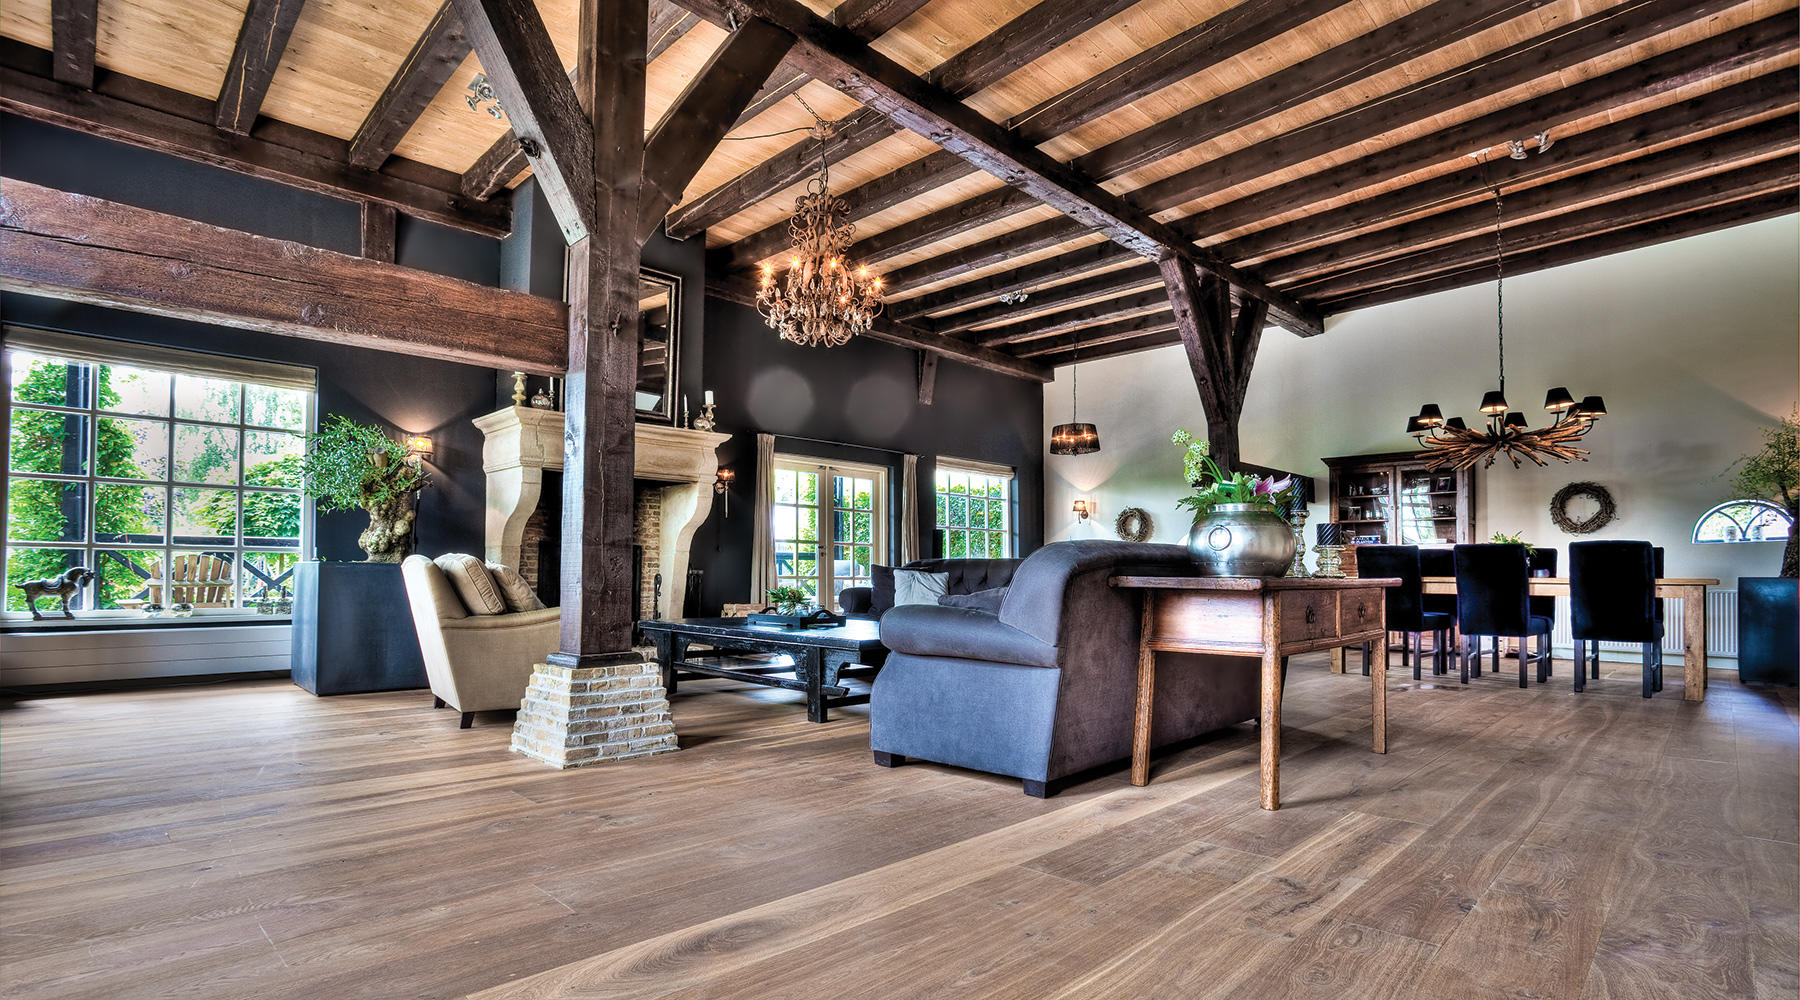 Interior Floors, Walls, and Beams